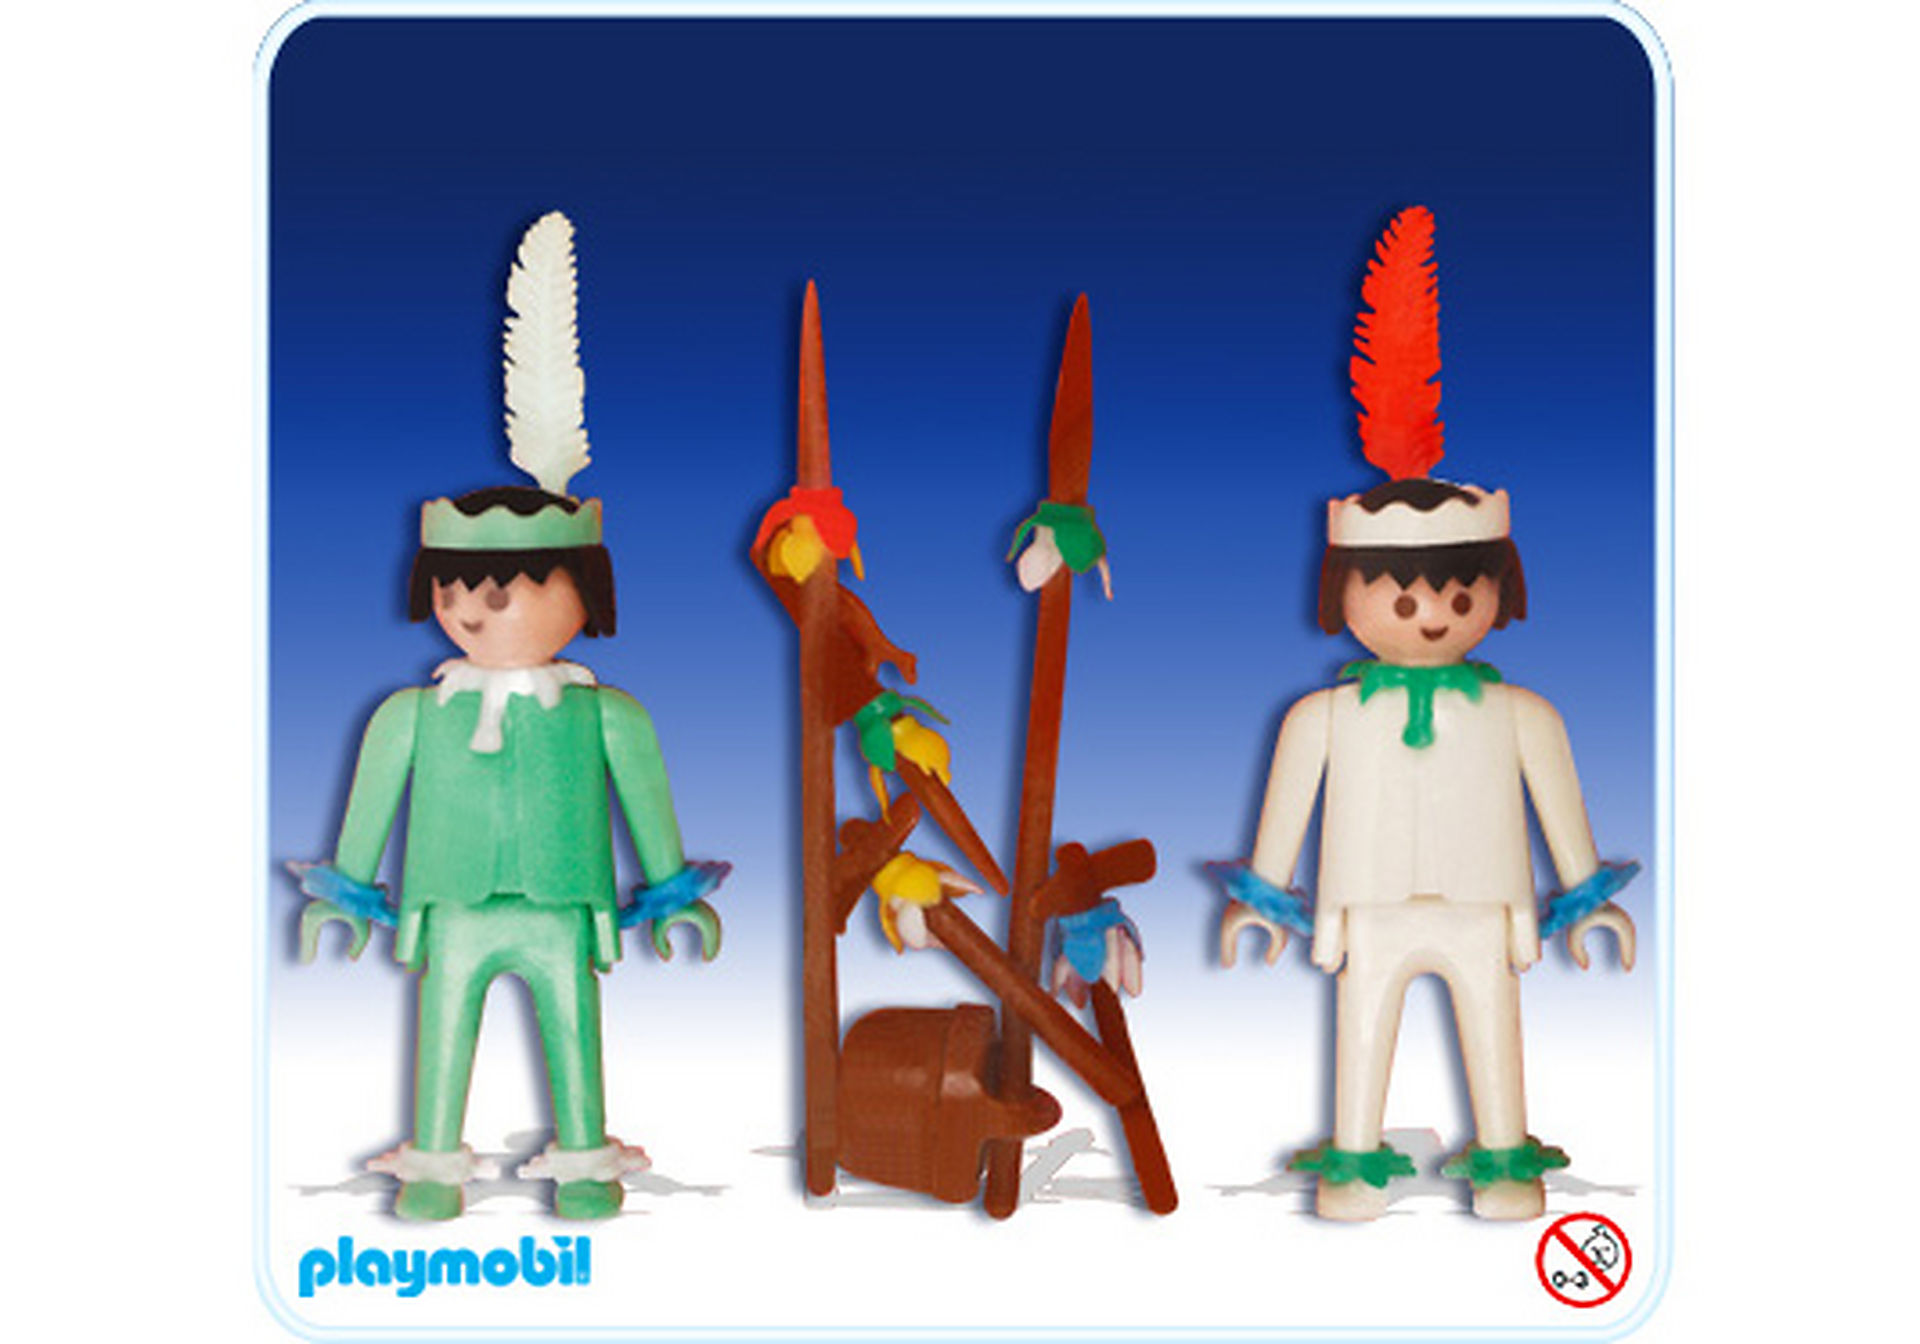 http://media.playmobil.com/i/playmobil/3125-A_product_detail/Indiens et accessoires